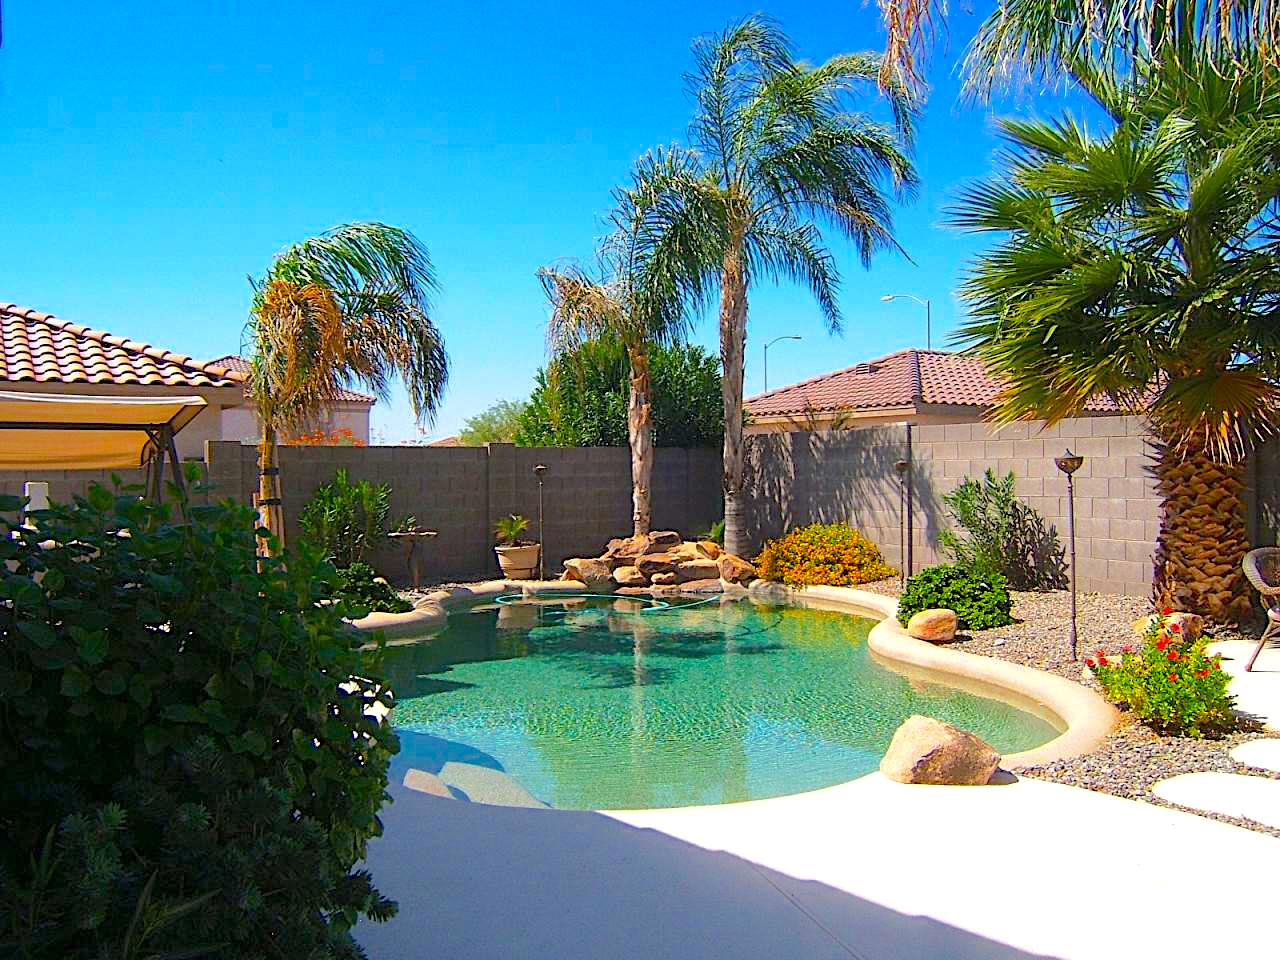 SOLD – Great home for entertaining! 5 beds – 2.5 bathrooms – loft – very nice POOL!